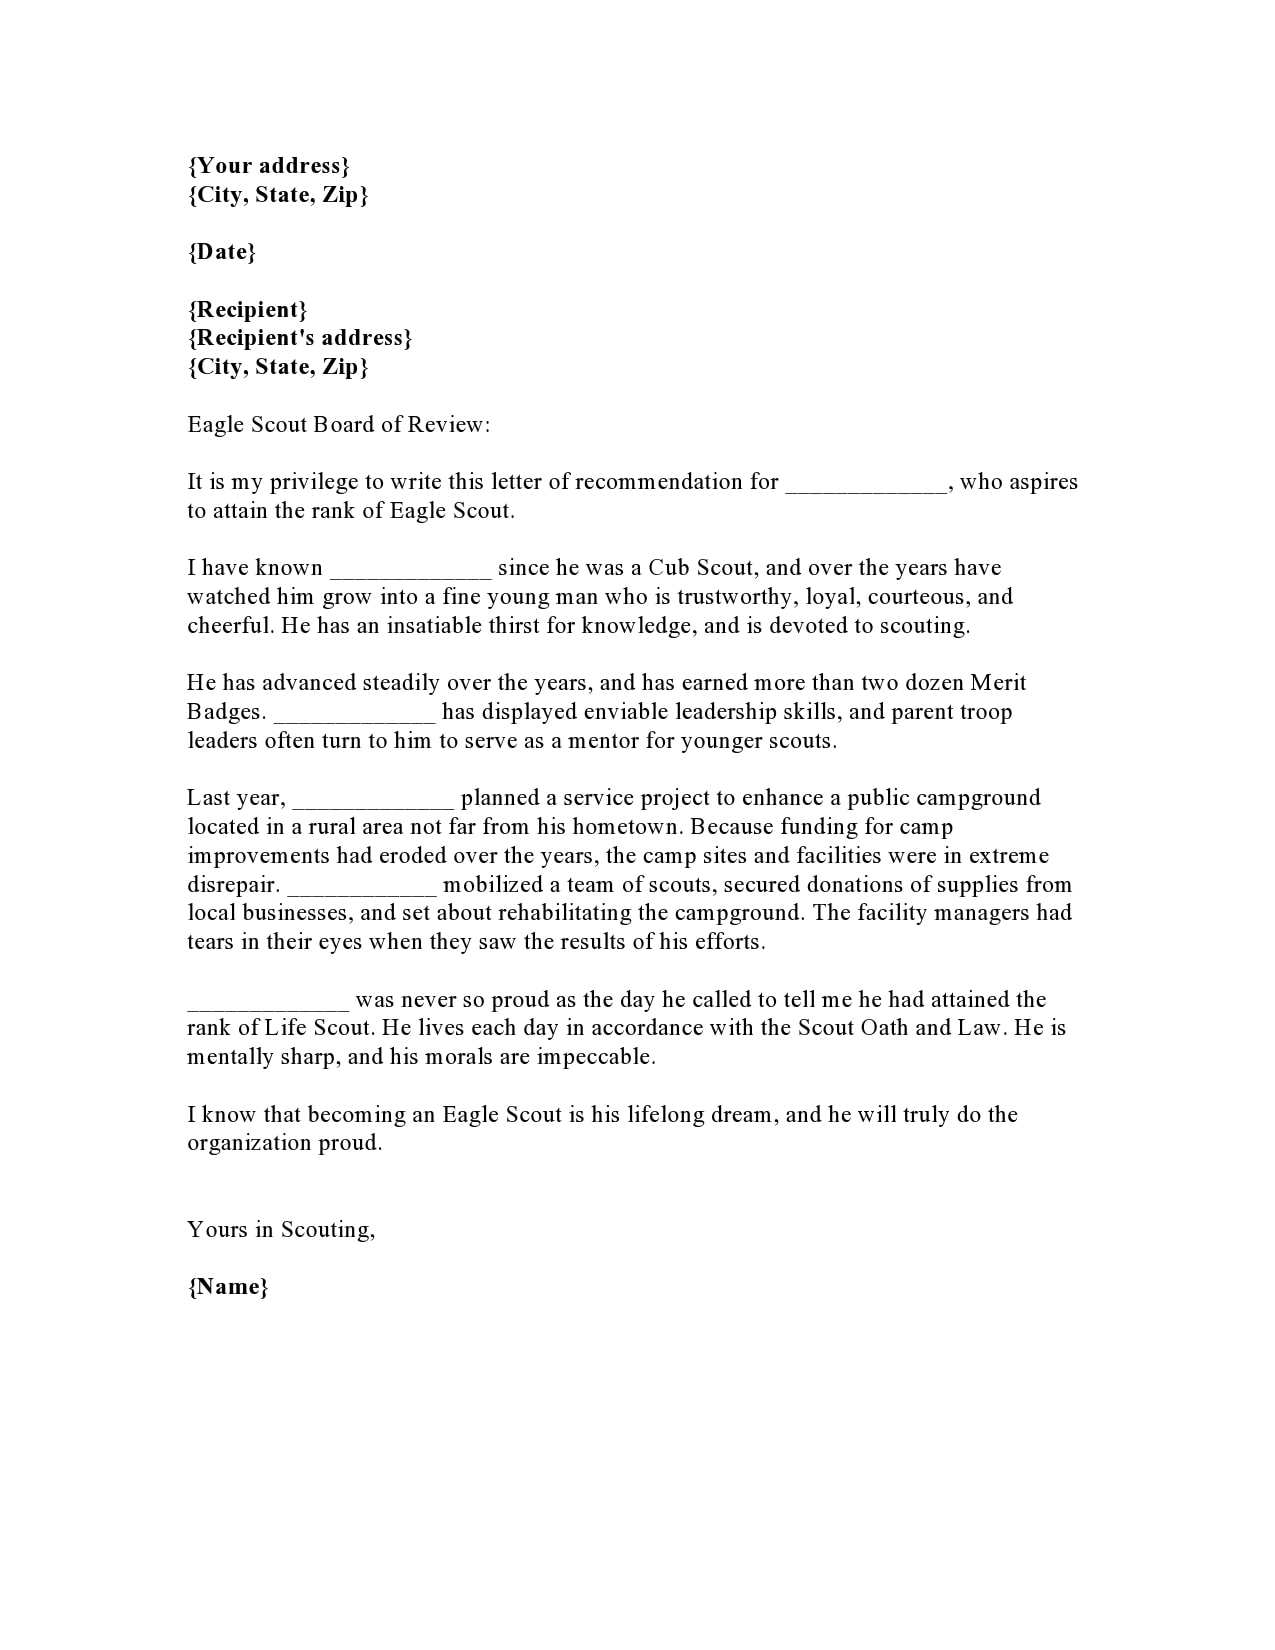 eagle scout letter of recommendation 04